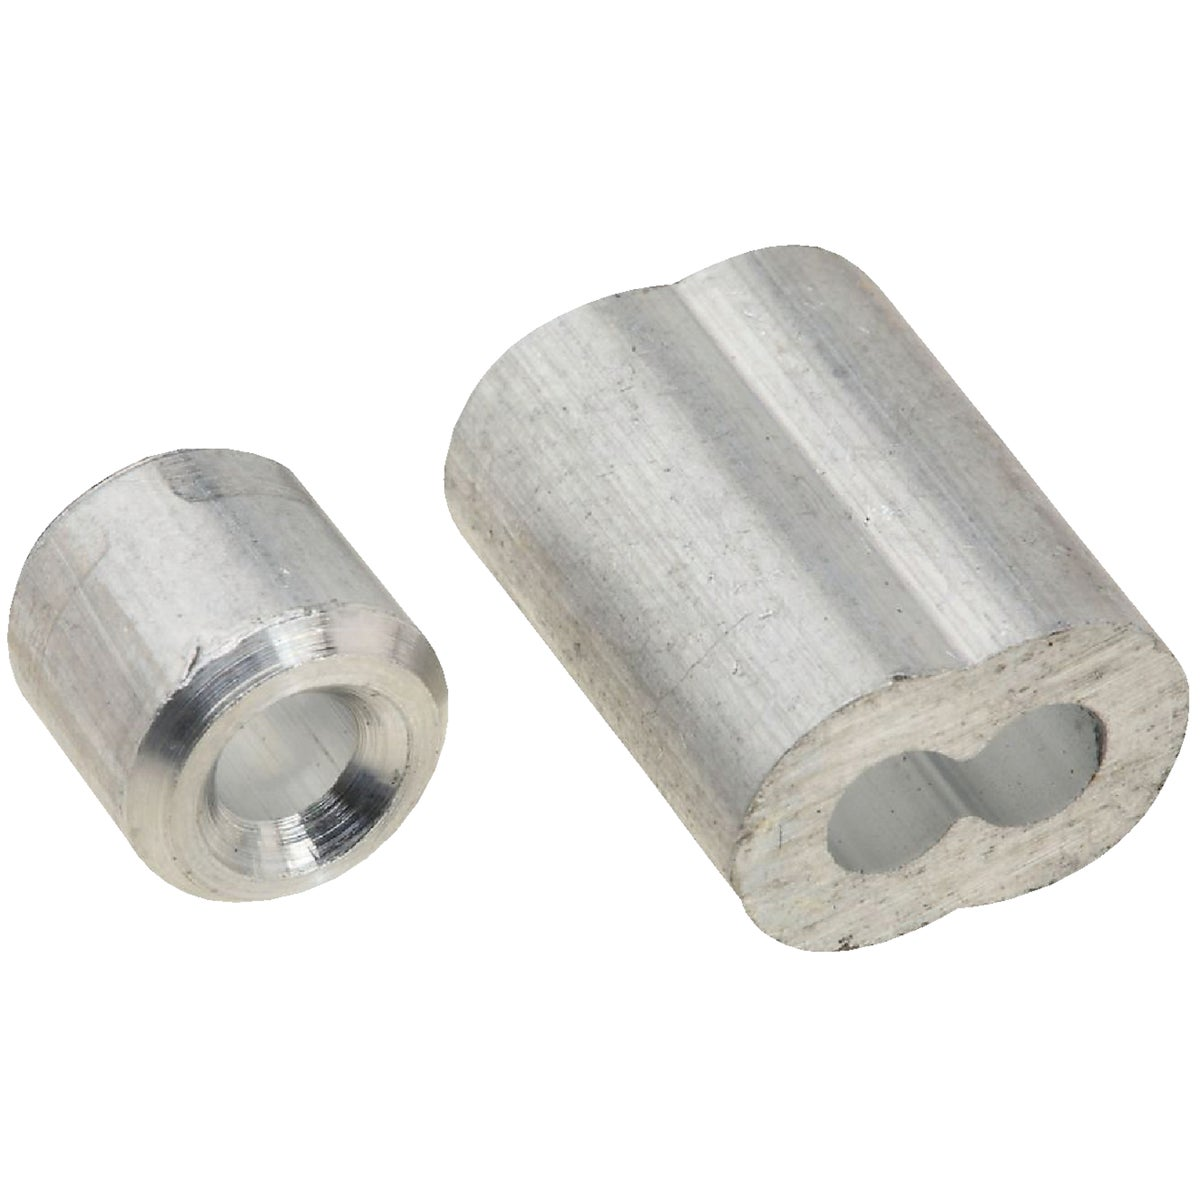 "1/8"" FERRULES & STOPS - N283853 by National Mfg Co"